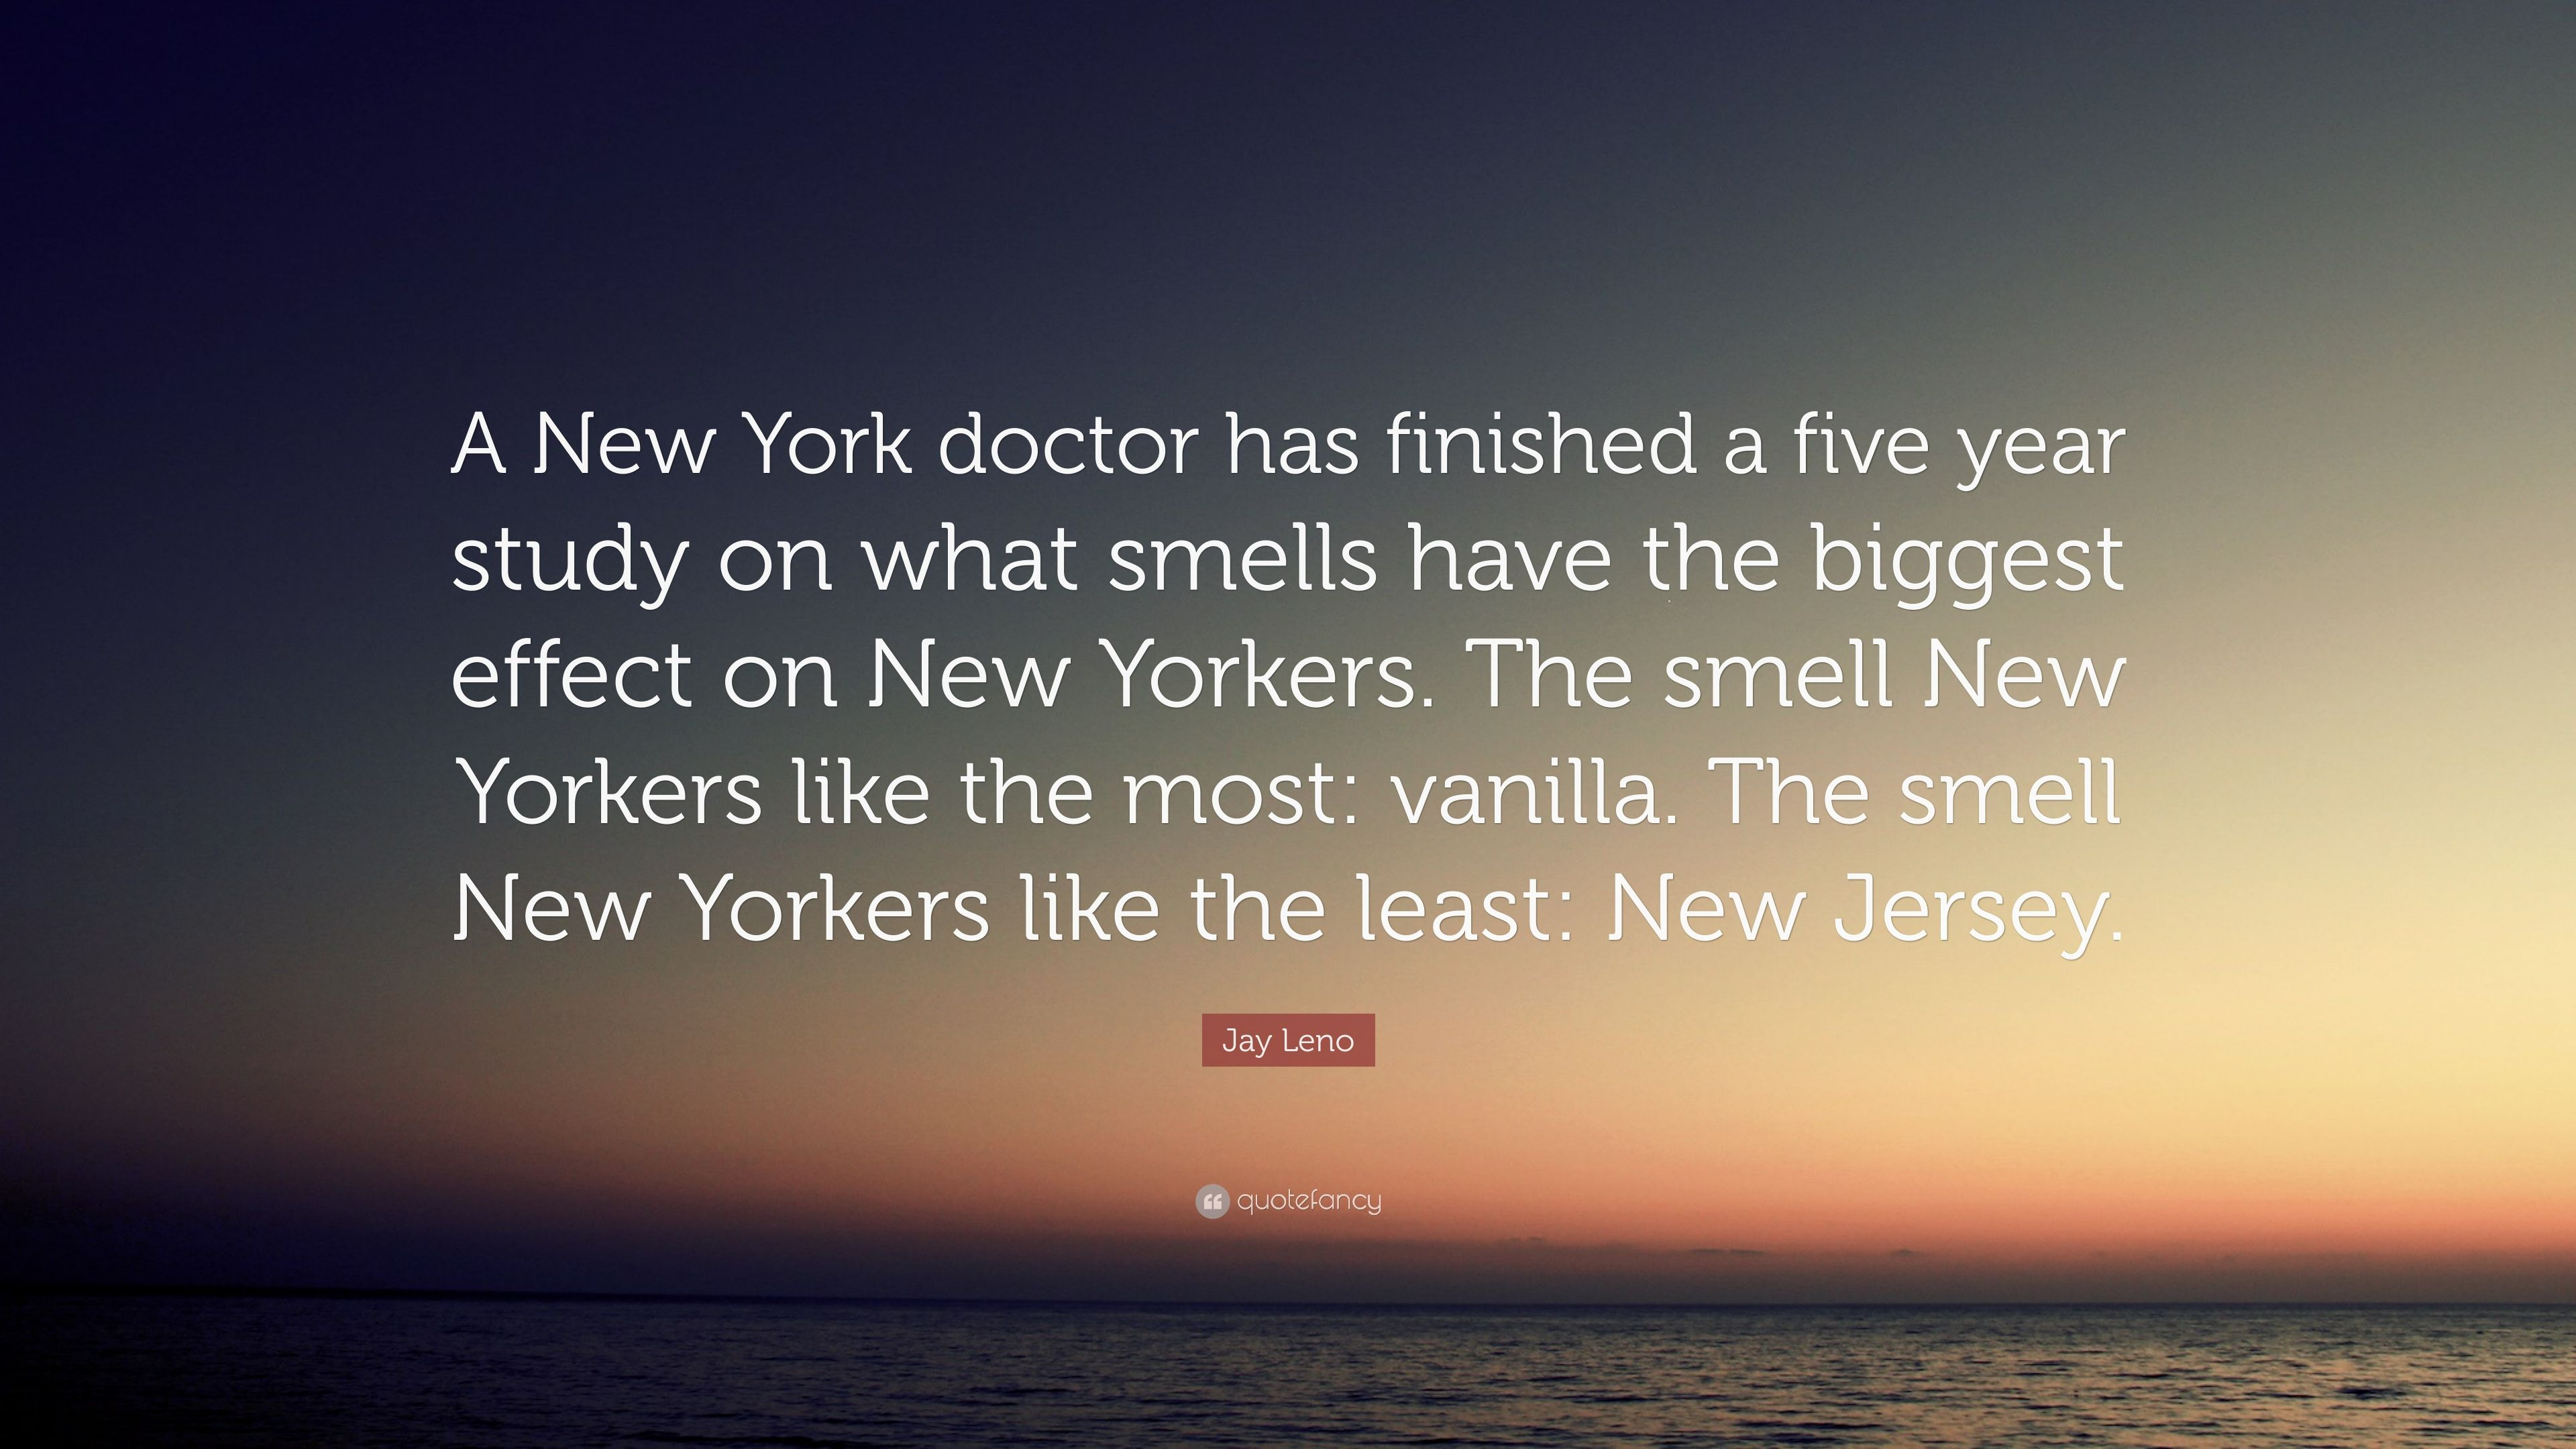 jay leno quote a new york doctor has finished a five year study on